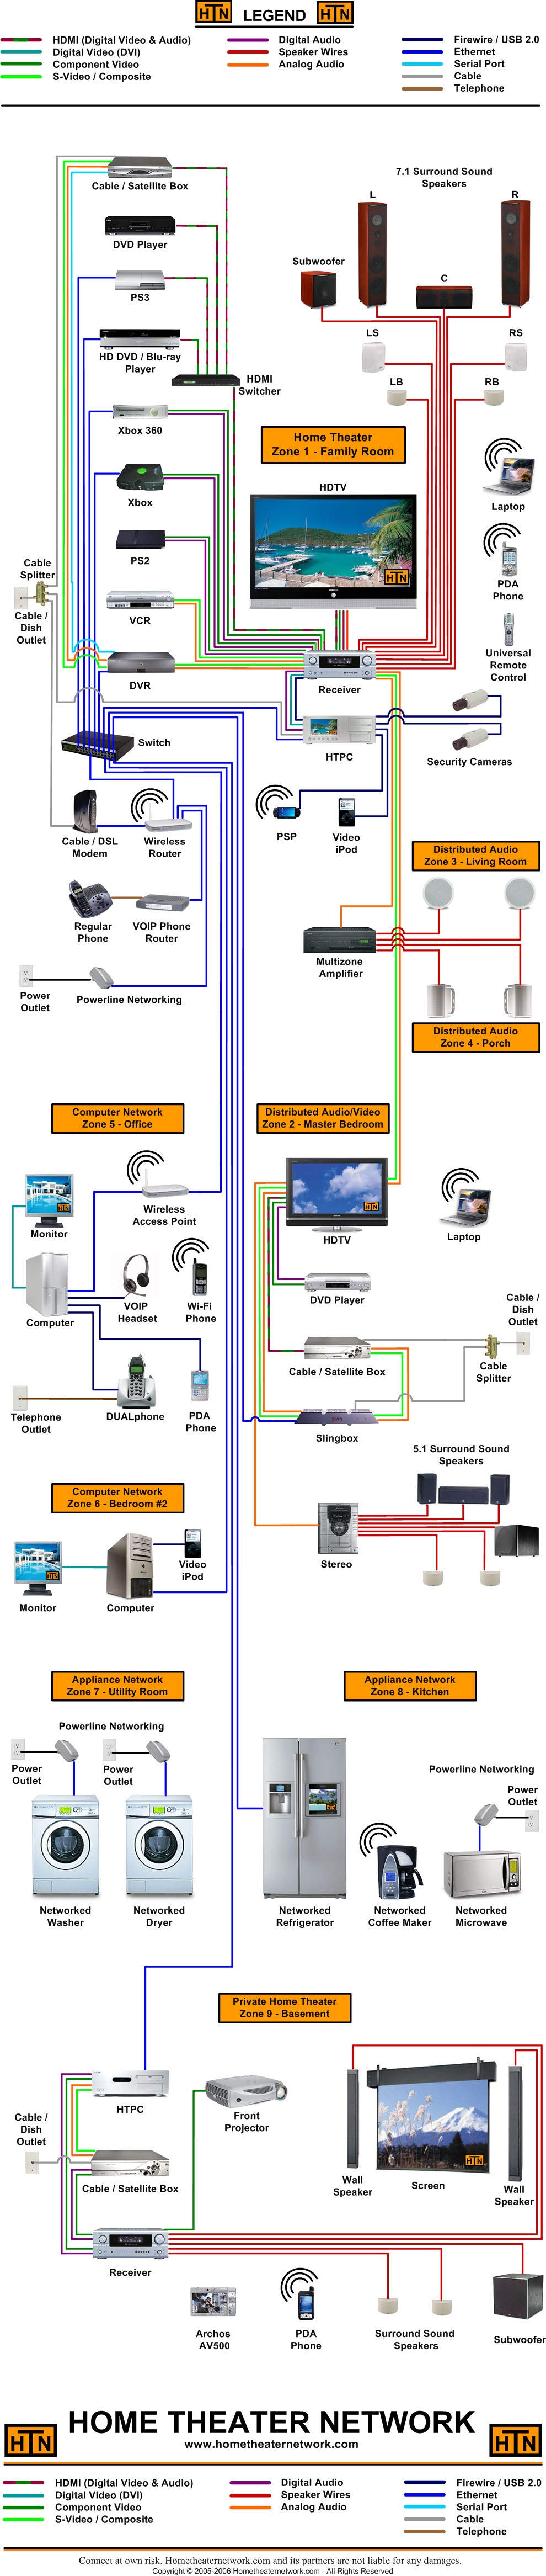 home theater hook up diagrams with Htn Bdlarge on Home theater also Band Diagram Windstar moreover Sound System Setup Diagram moreover Connecting A Cabletv Or Satellite System also B0071i3of2.